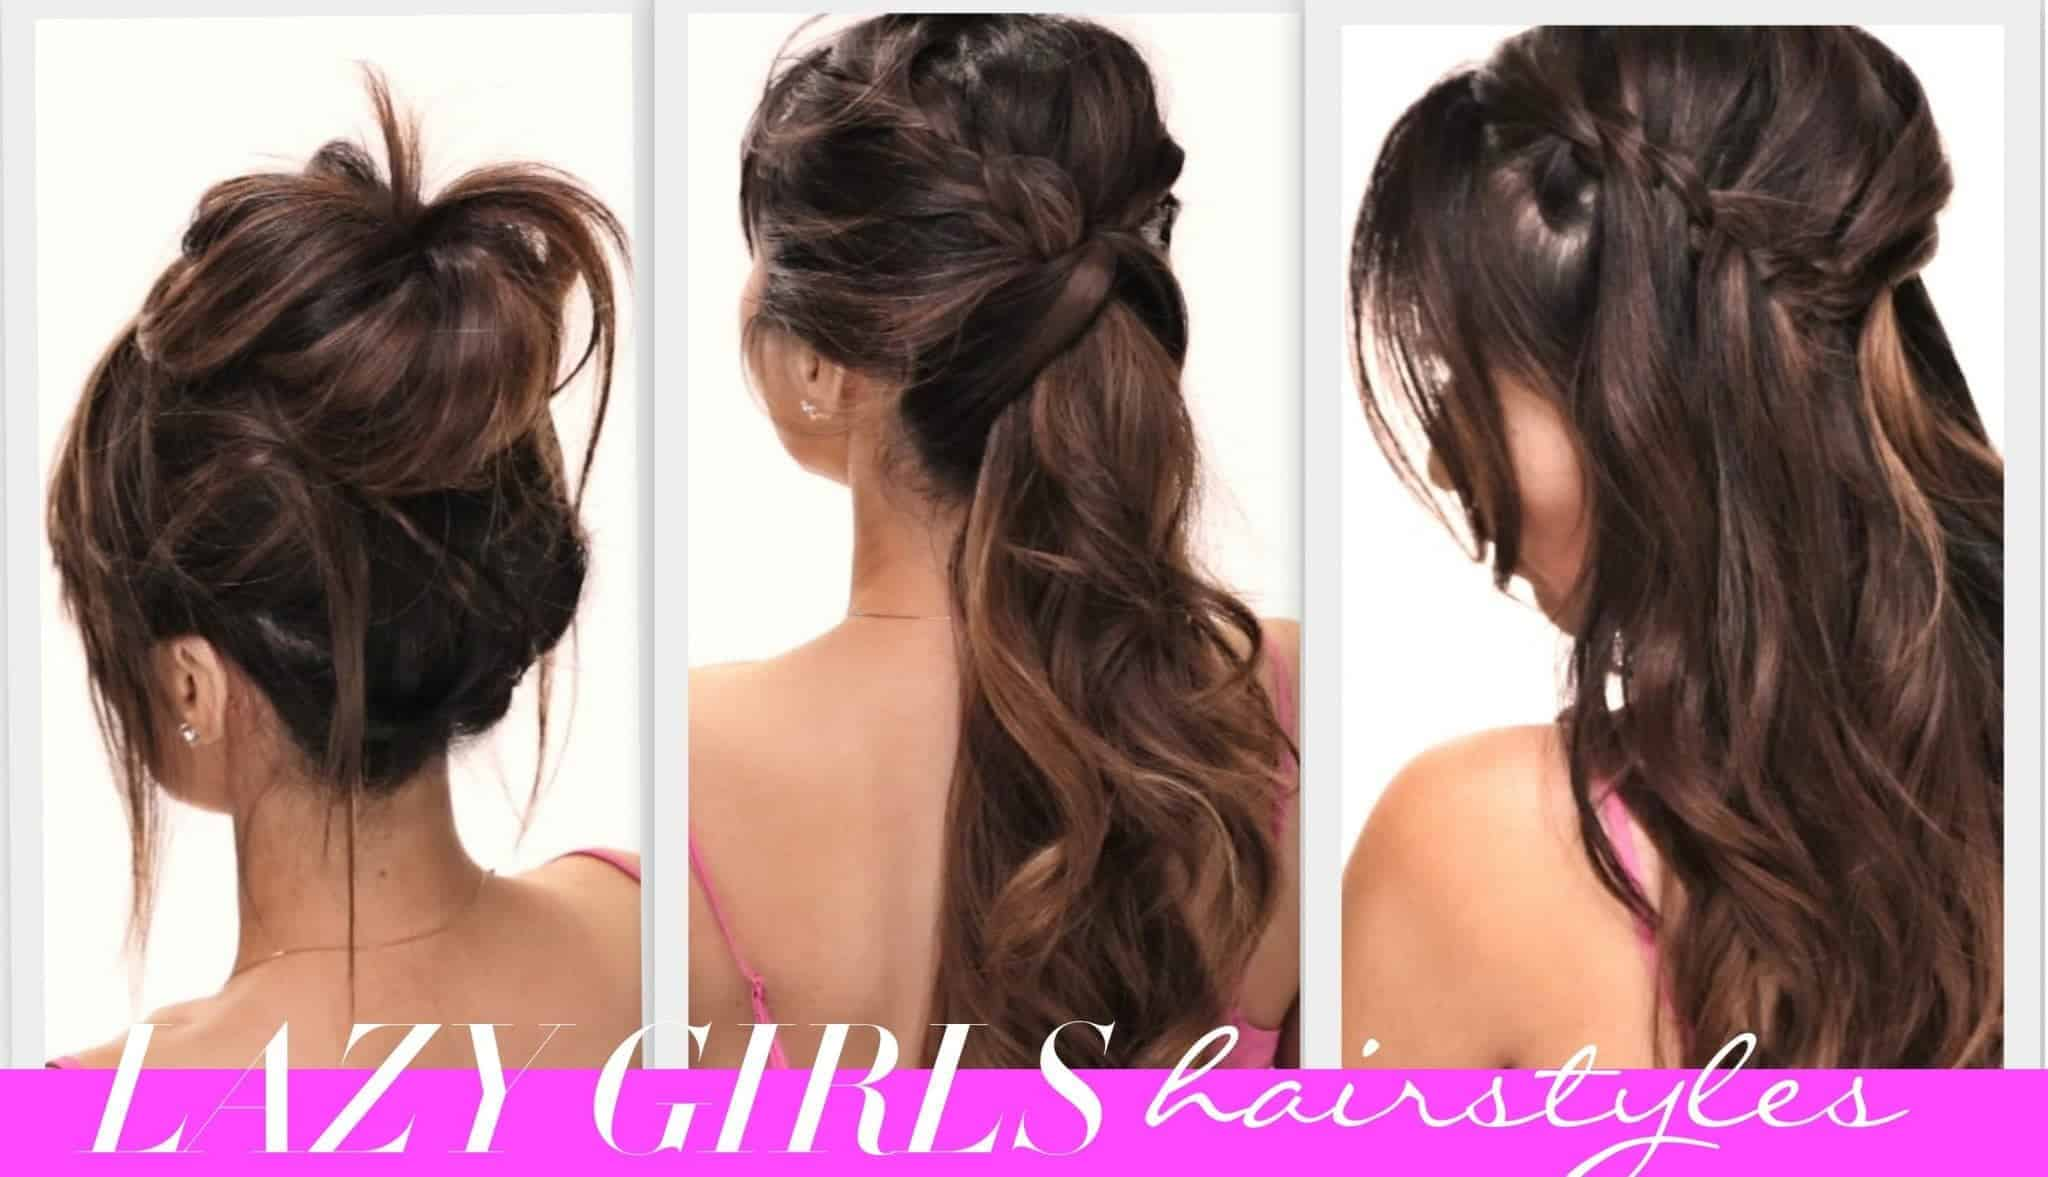 Messy hairstyles for long hair and updo